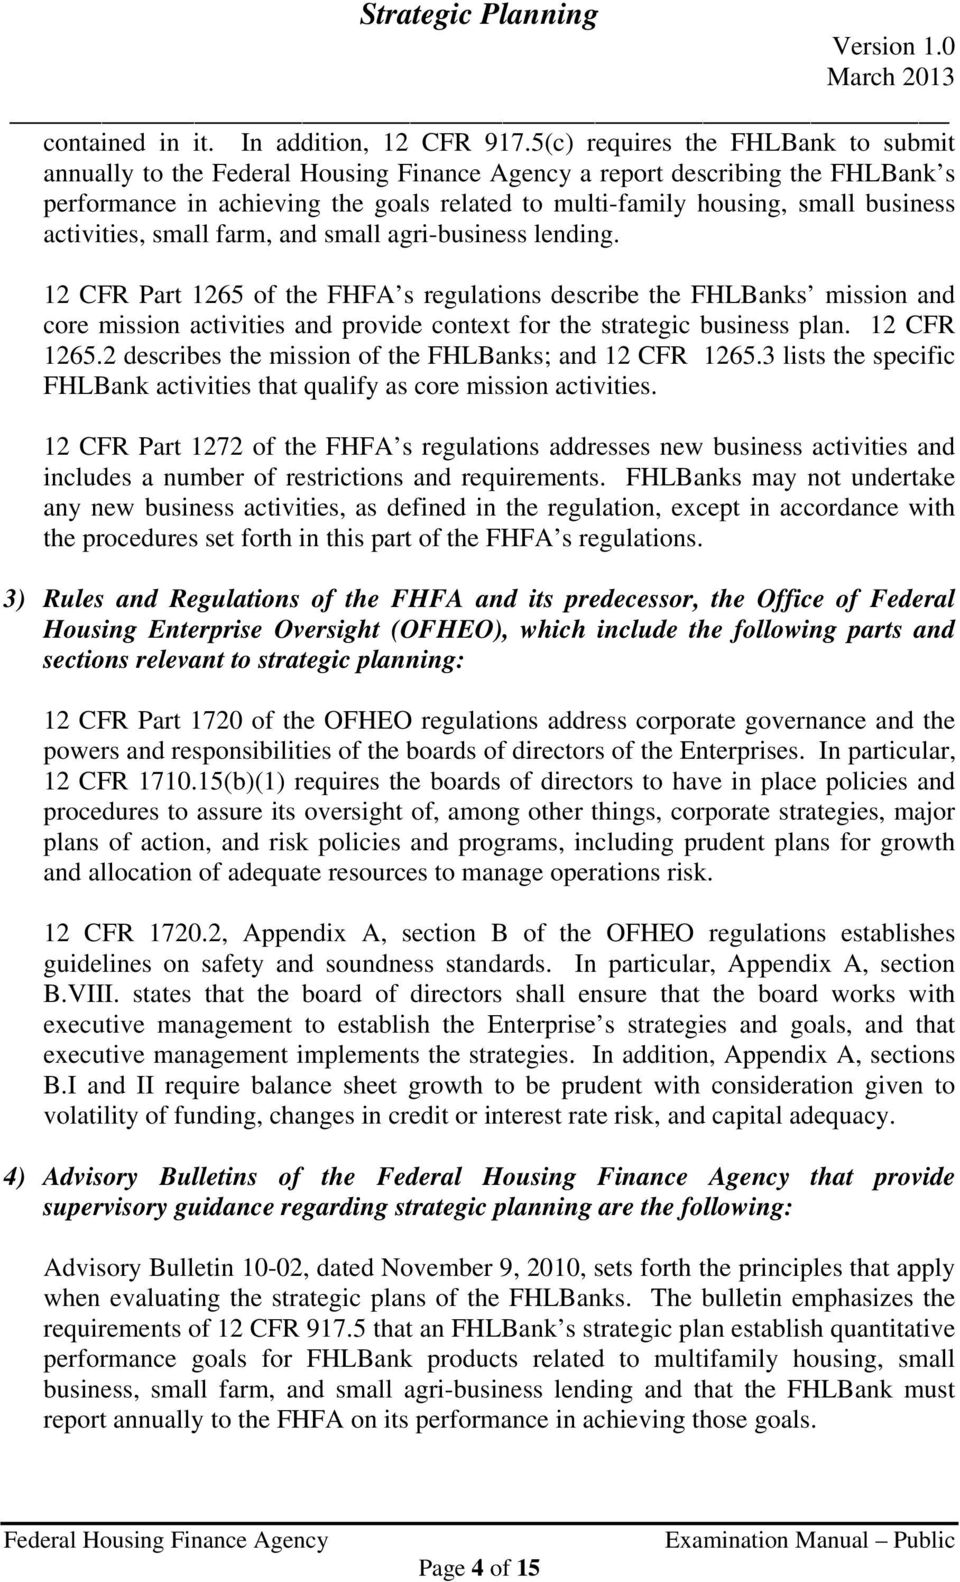 small agri-business lending. 12 CFR Part 1265 of the FHFA s regulations describe the FHLBanks mission and core mission activities and provide context for the strategic business plan. 12 CFR 1265.